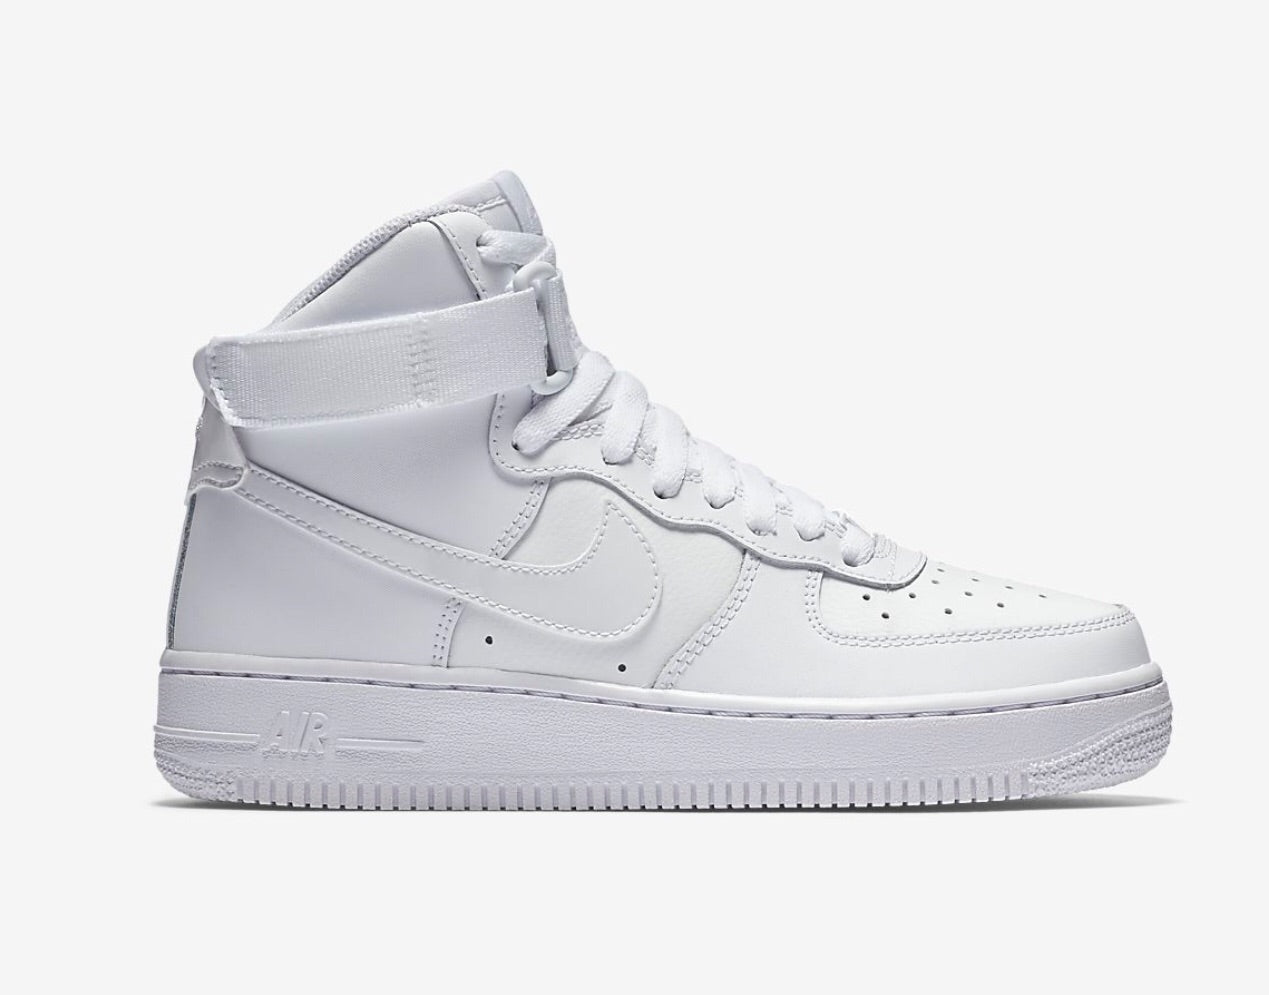 premium selection 33d25 b1a21 US Women's size 7 (Men's 5.5) White Nike AF1 High - Fern ...